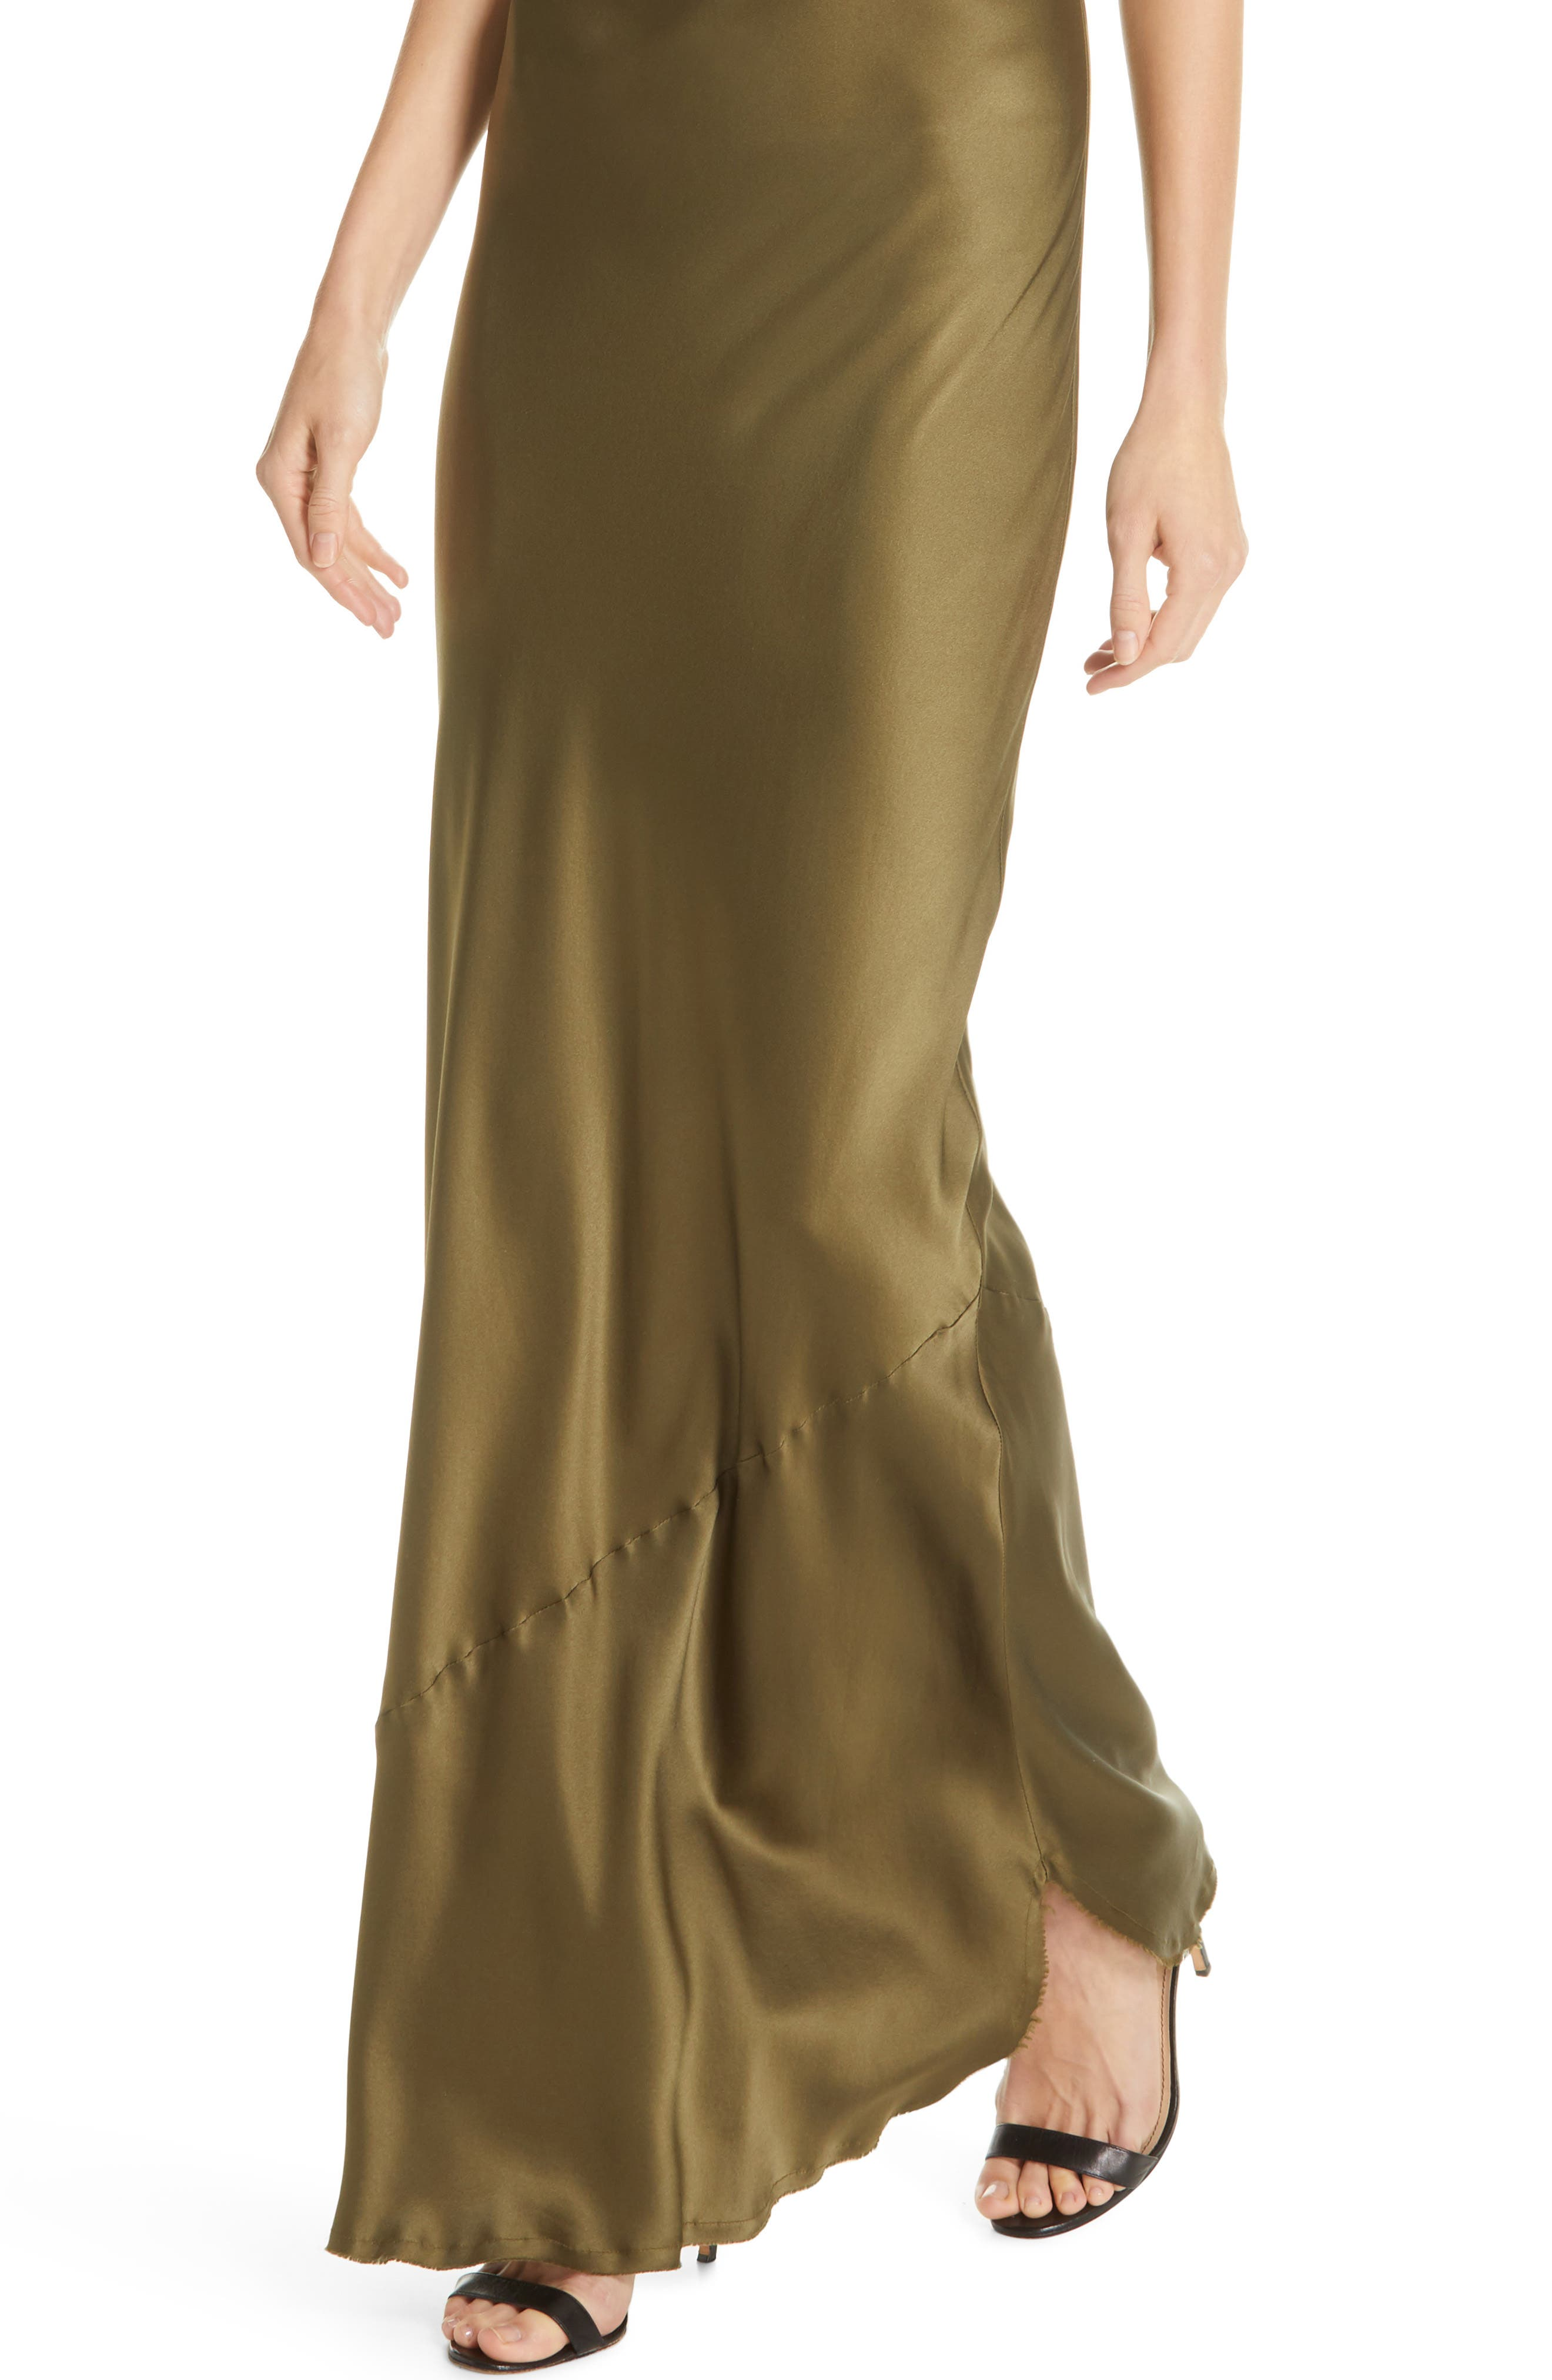 NILI LOTAN, Silk Camisole Gown, Alternate thumbnail 5, color, OLIVE